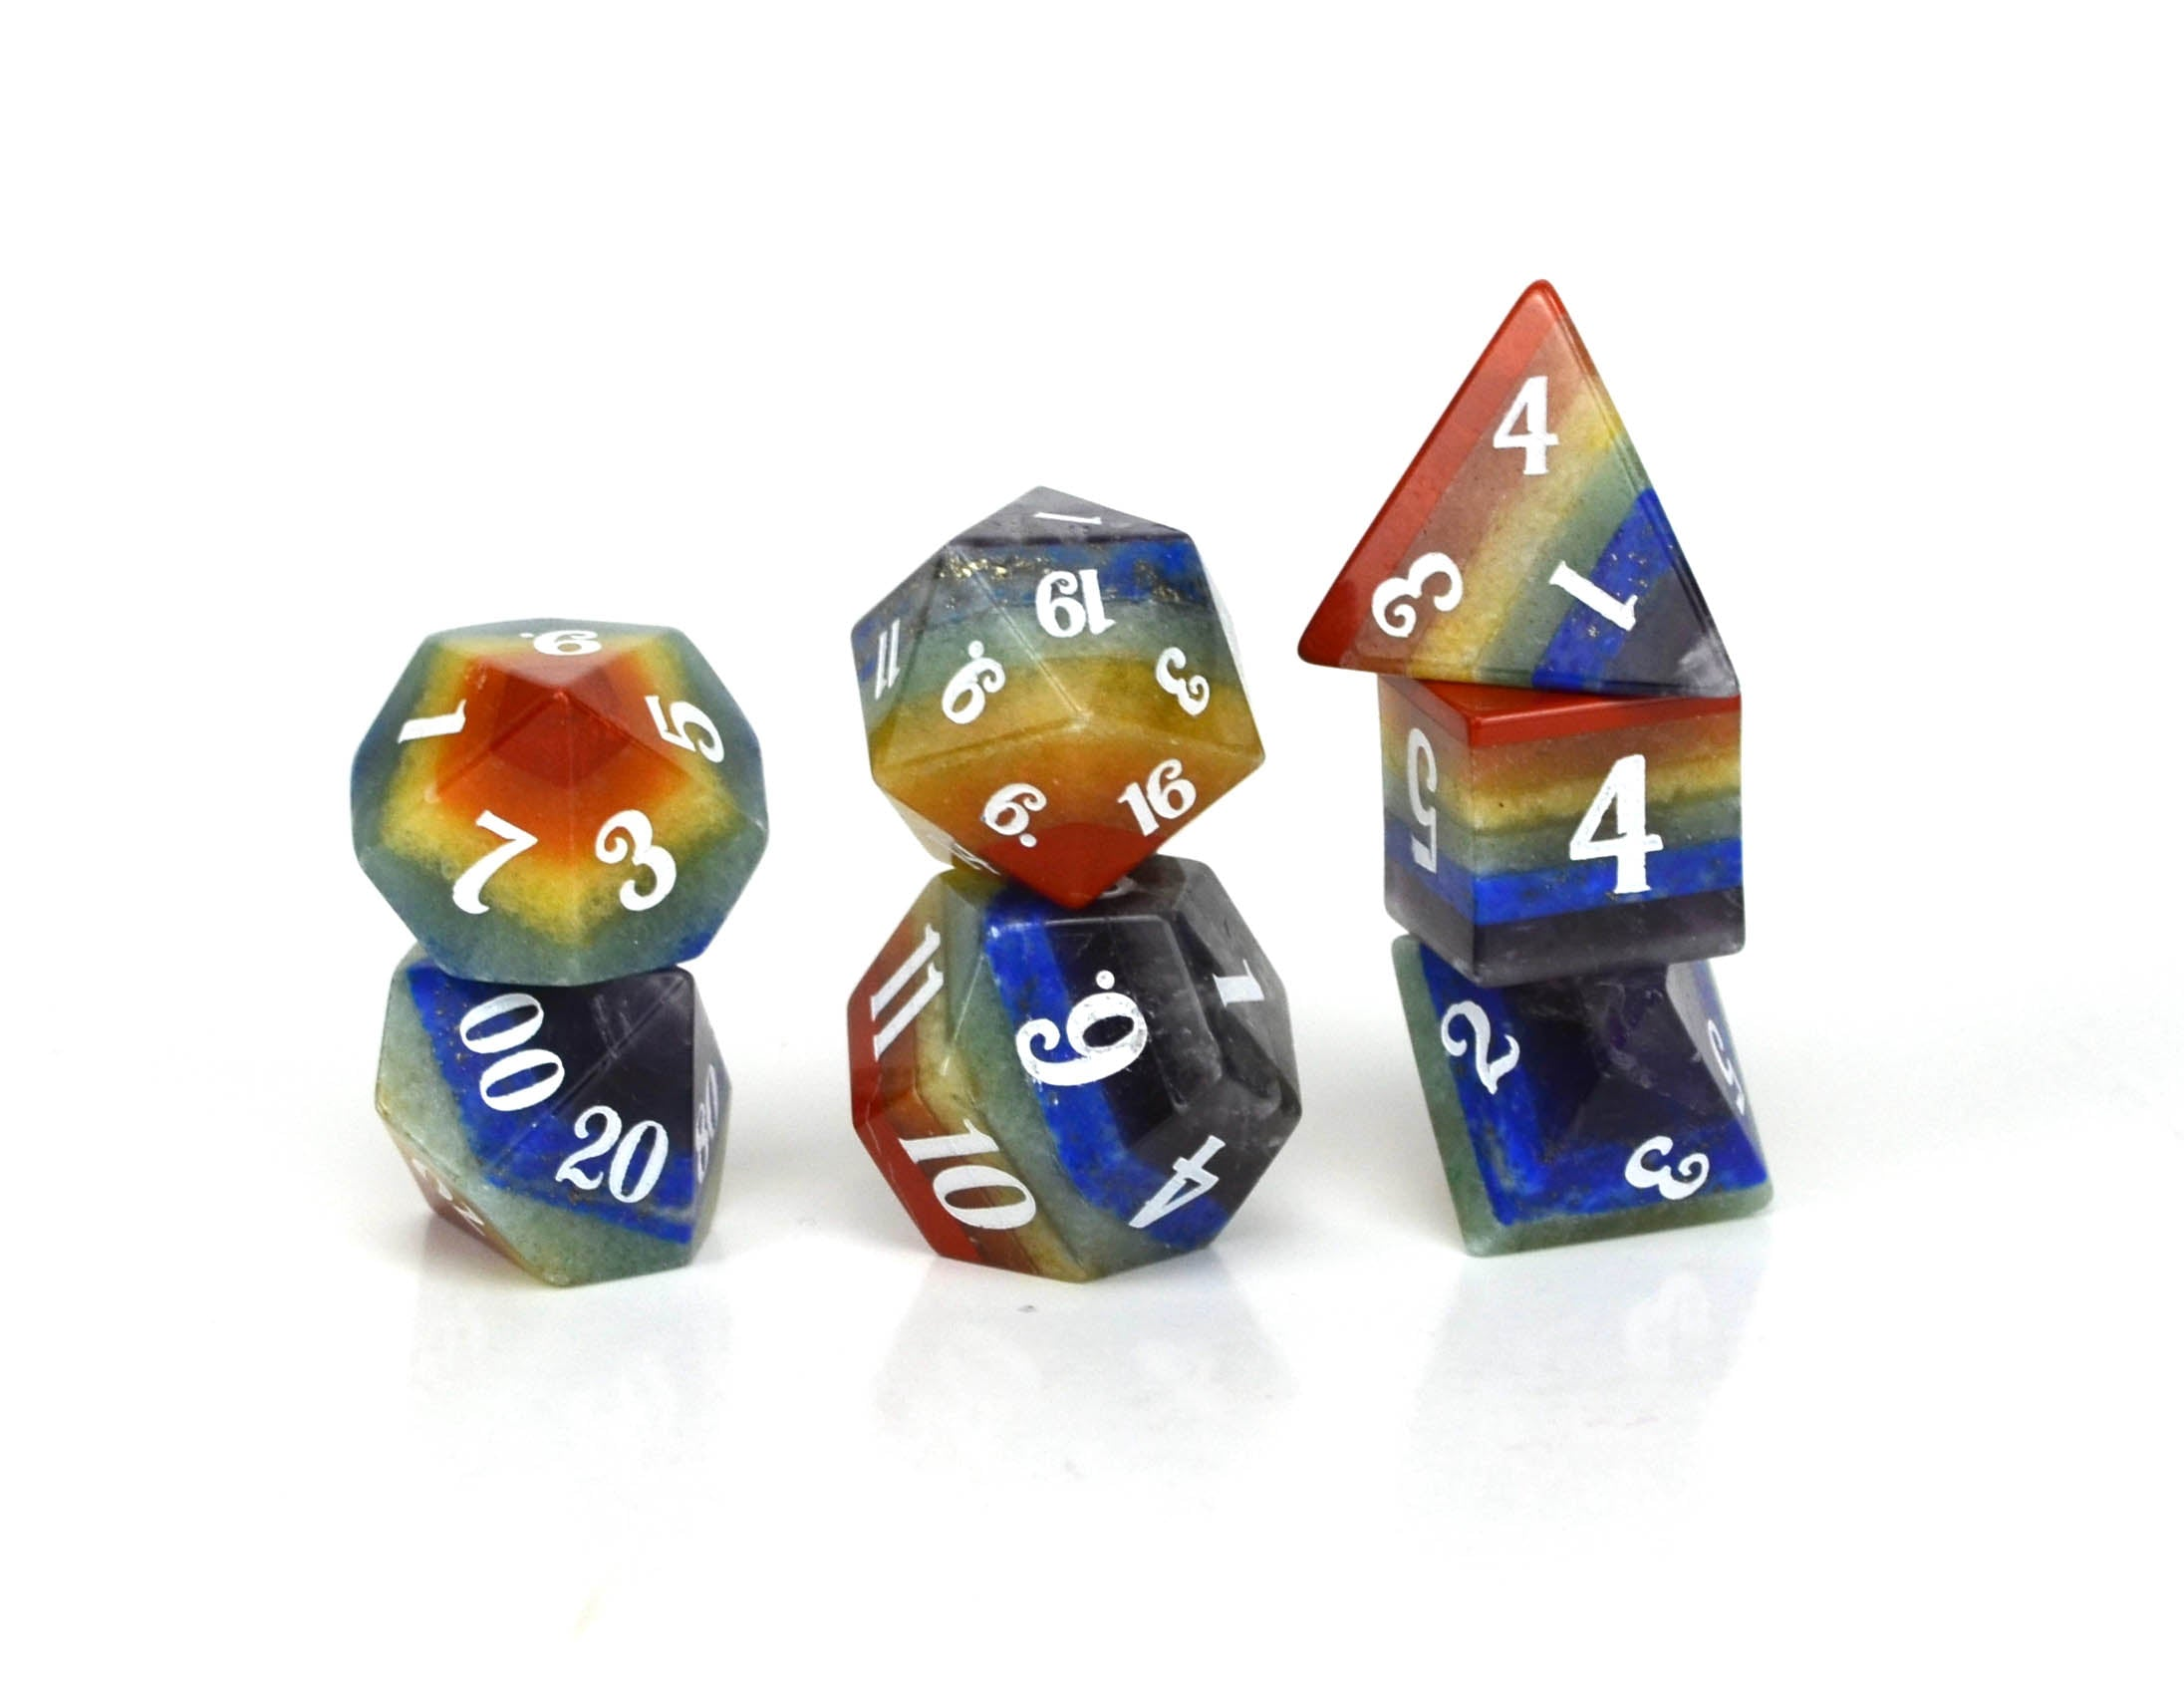 Layered Semi Precious Stone Dice Set